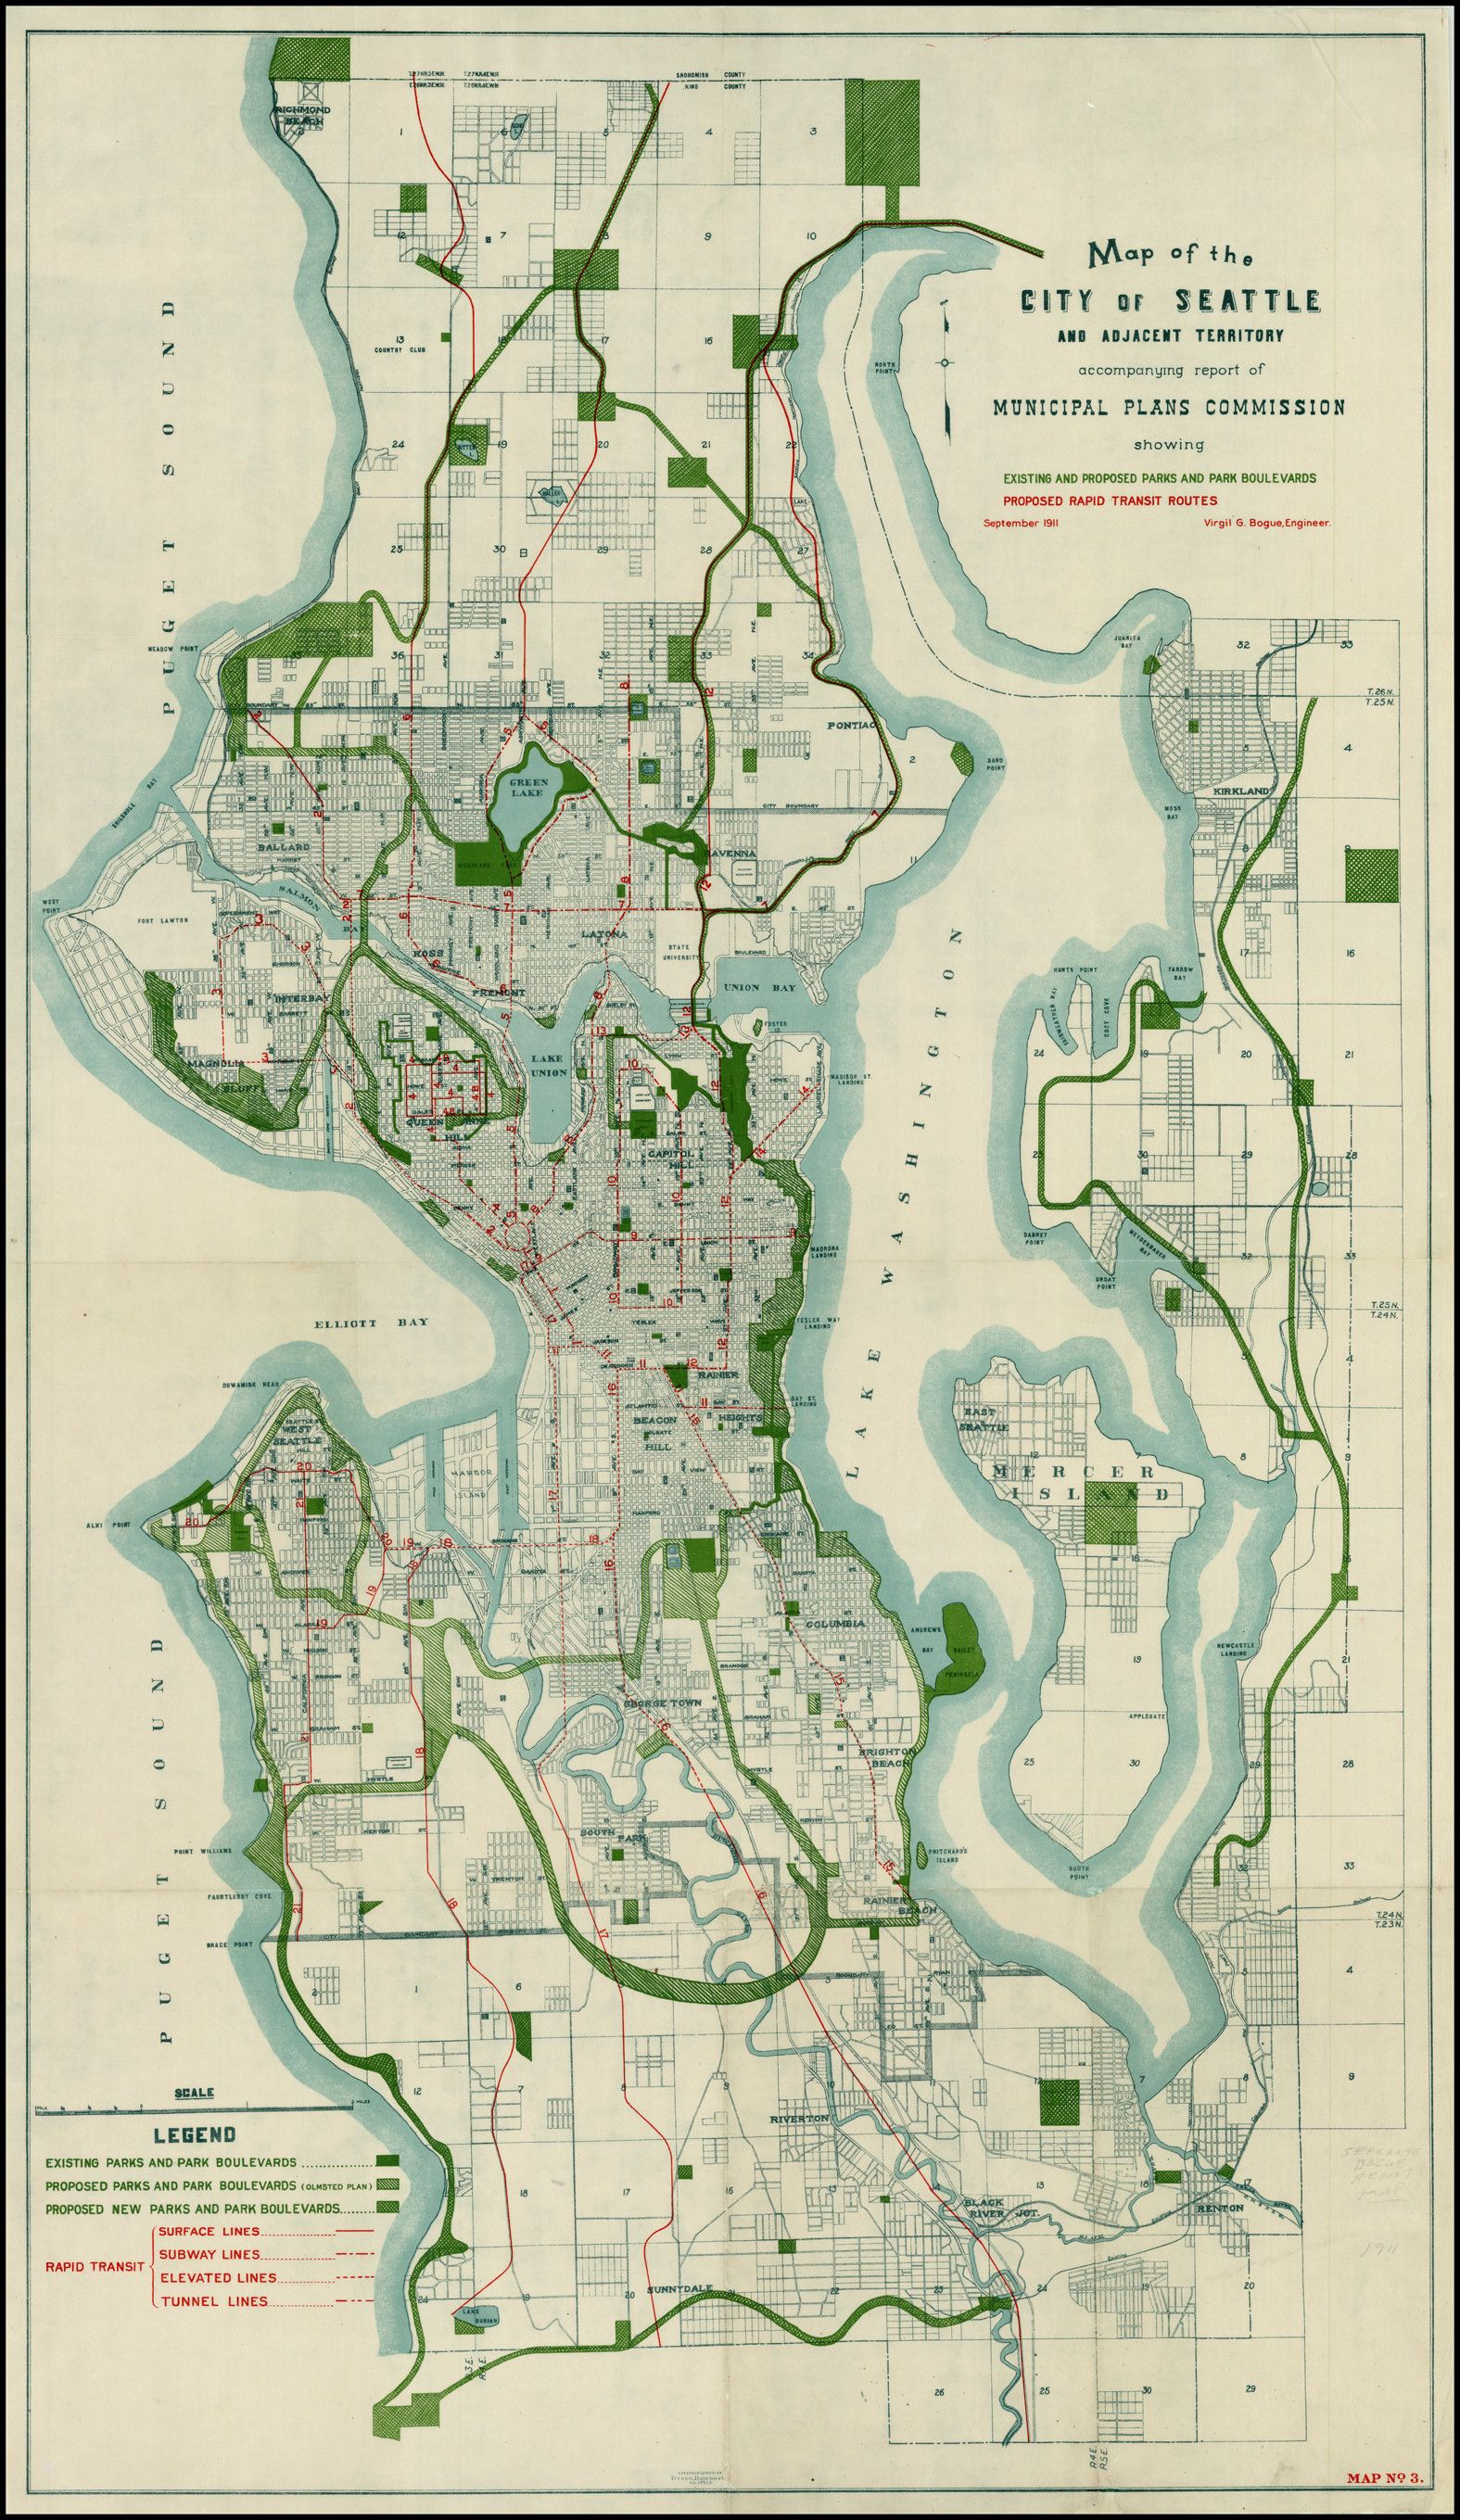 Mta Subway Map Permission Of Usage.1911 Bogue Plan Of Seattle Including Parks And Rapid Transit Map